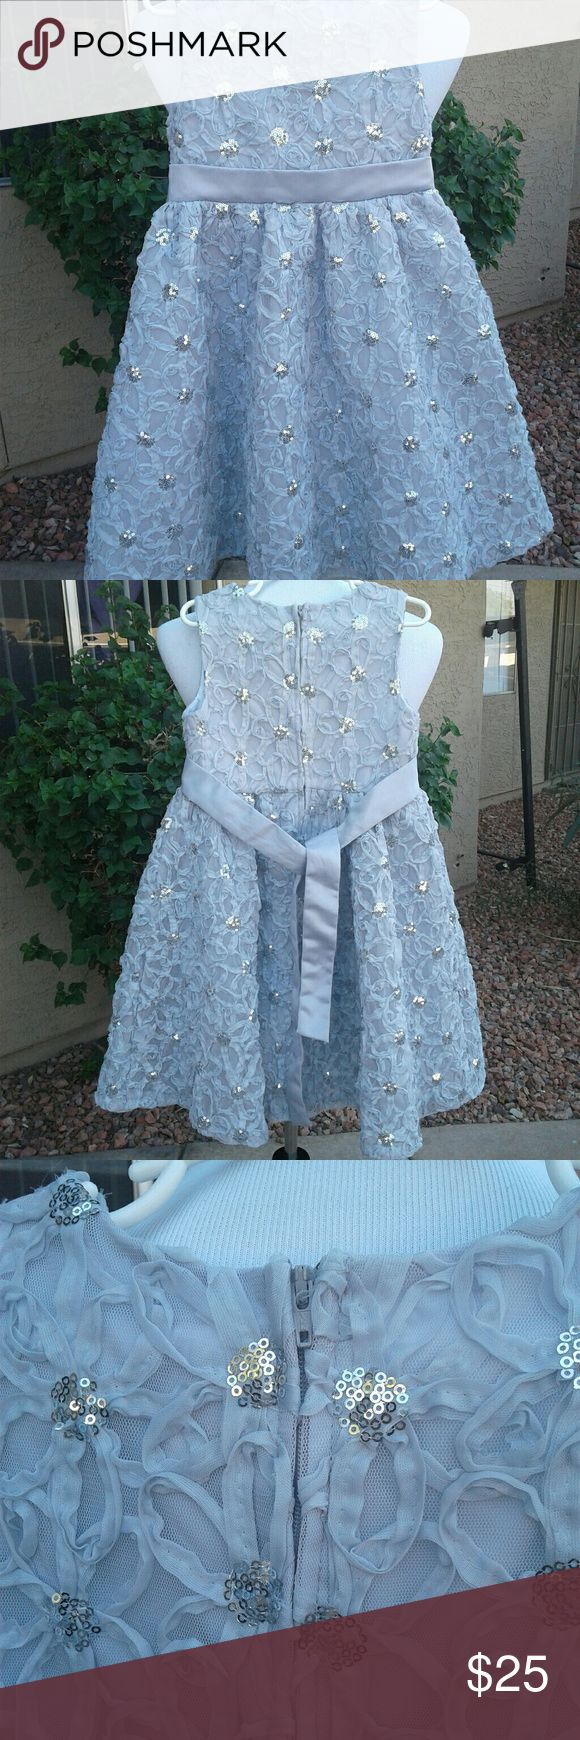 SILVER GRAY FLOWER GIRL DRESS SIZE 6X NWOT CUTE FLOWER GIRL DRESS THAT SPARKLES AND SHINES WAS WORN FOR 2 HOURS TOPS CAN BE WORN FOR HOLIDAYS CHURCH Rare Editions Dresses Formal